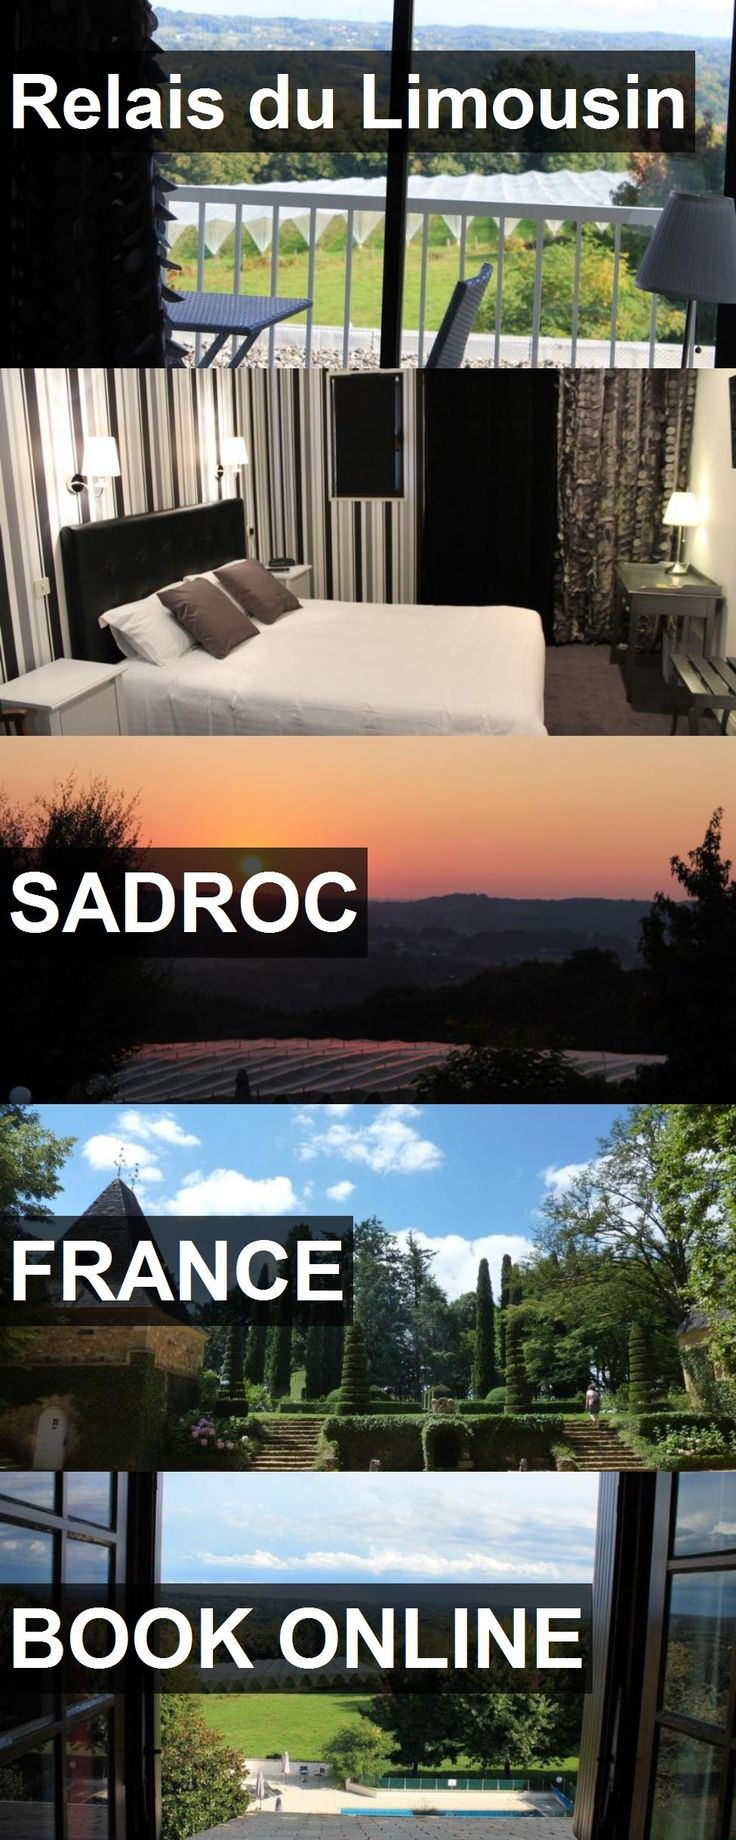 Hotel Relais du Limousin in Sadroc, France. For more information, photos, reviews and best prices please follow the link. #France #Sadroc #RelaisduLimousin #hotel #travel #vacation